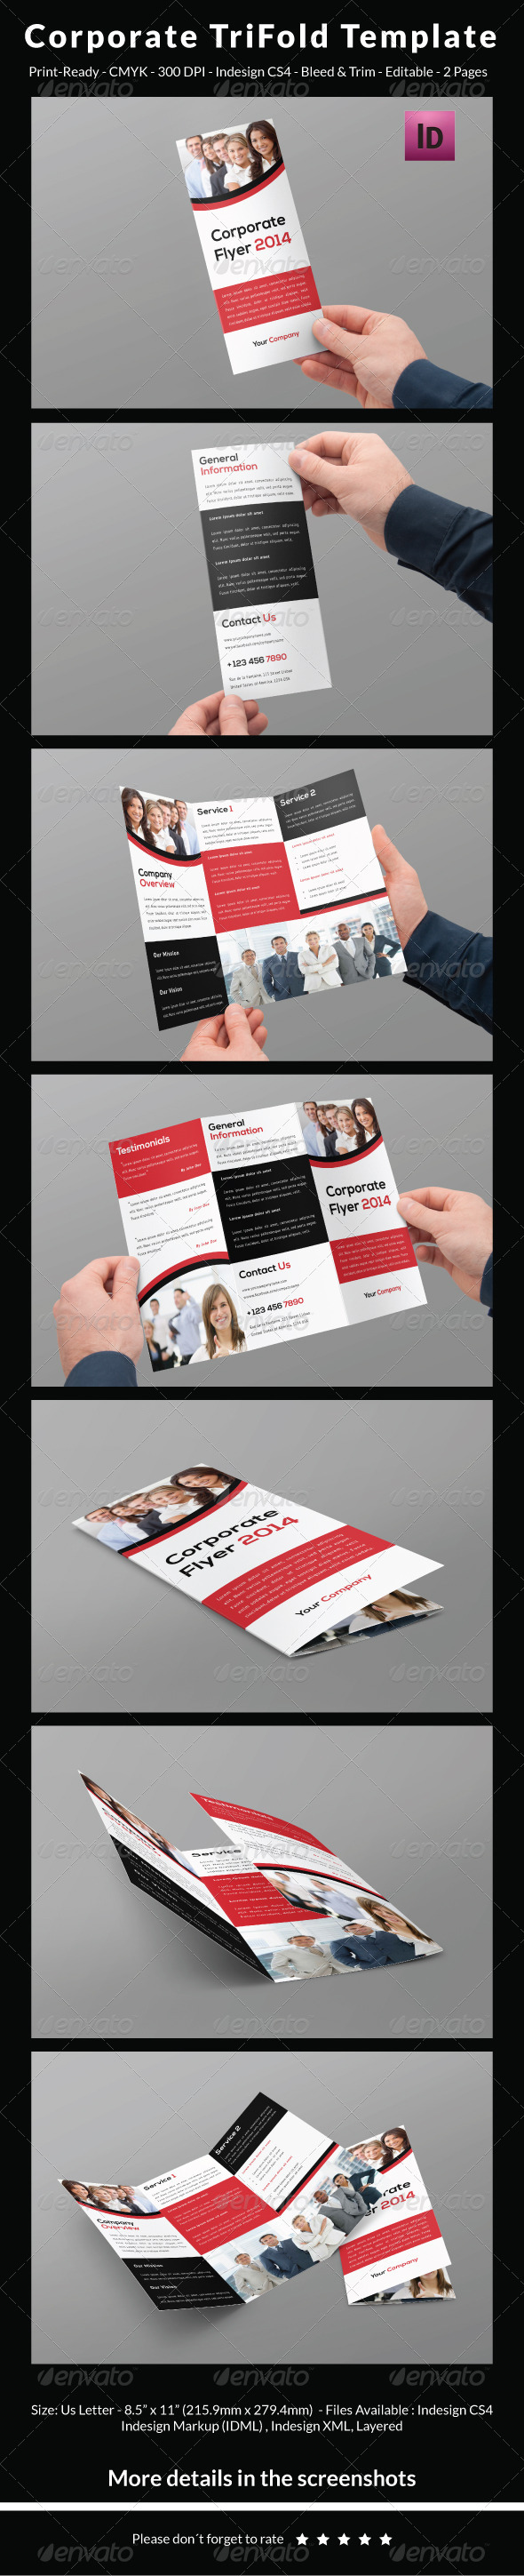 GraphicRiver Corporate Trifold Template 6505573